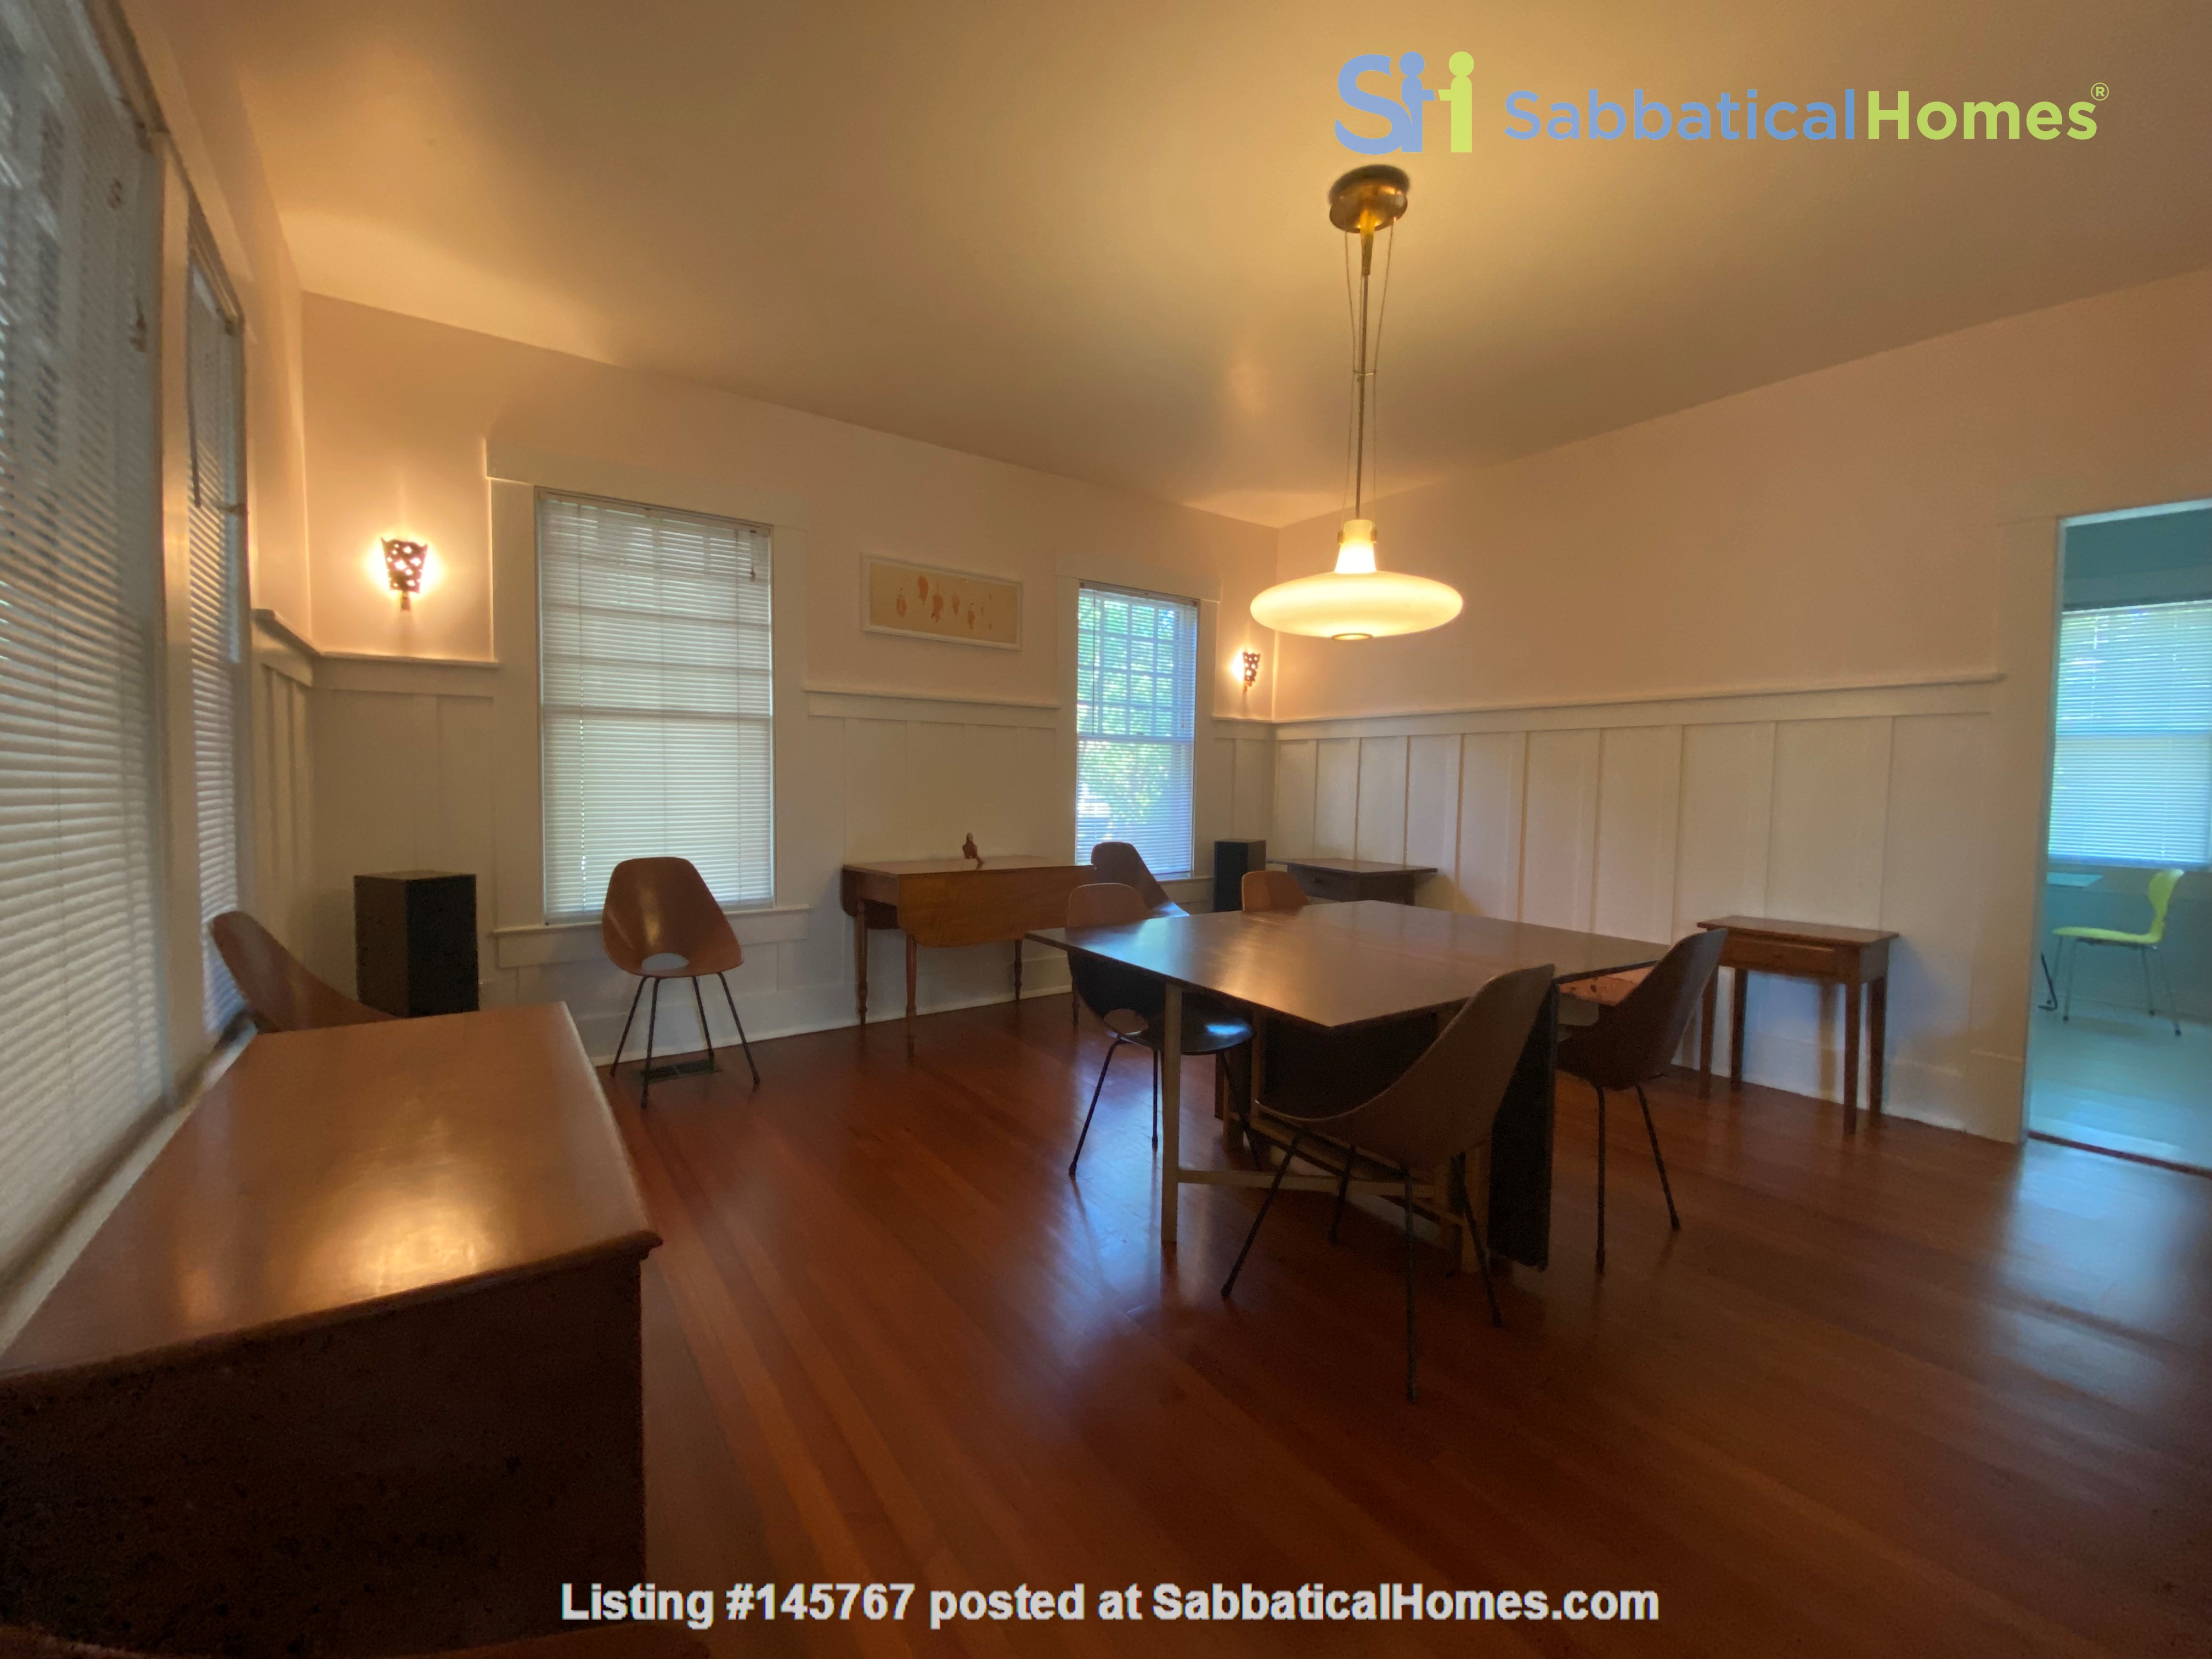 Beautiful 1920s Craftsman House (furnished, home share) Home Rental in Austin 2